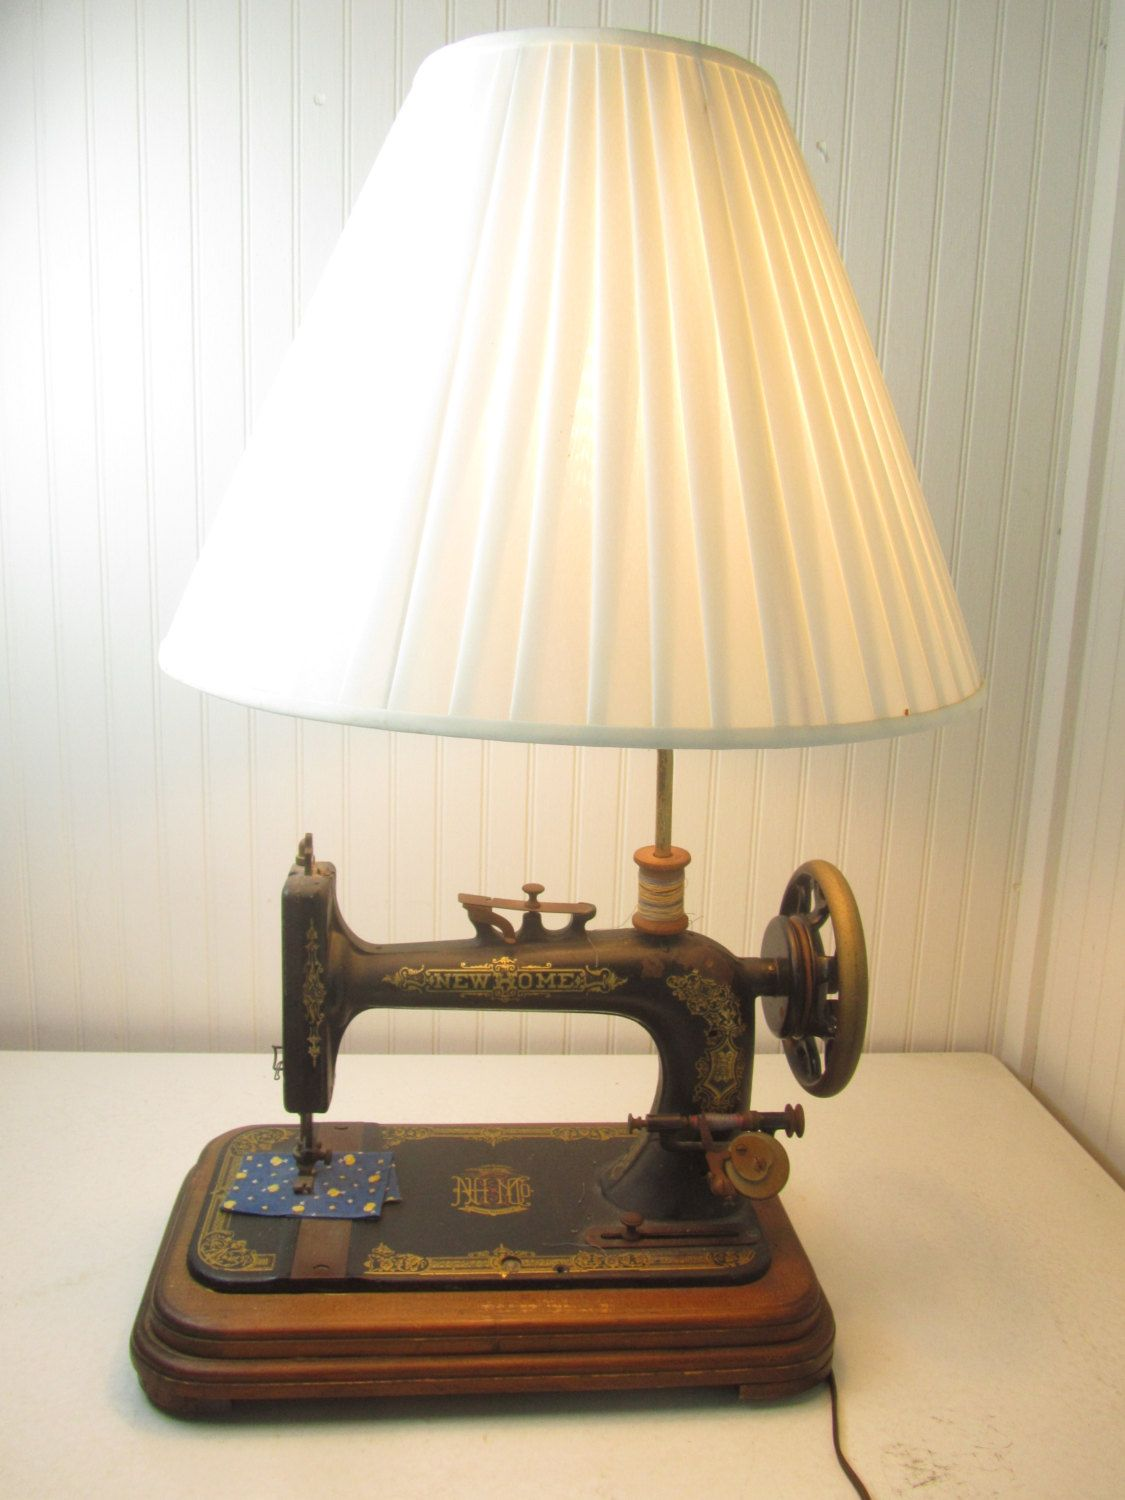 House Table Lamp Sewing Machine Lamp Vintage Lamp Table Lamp New Home